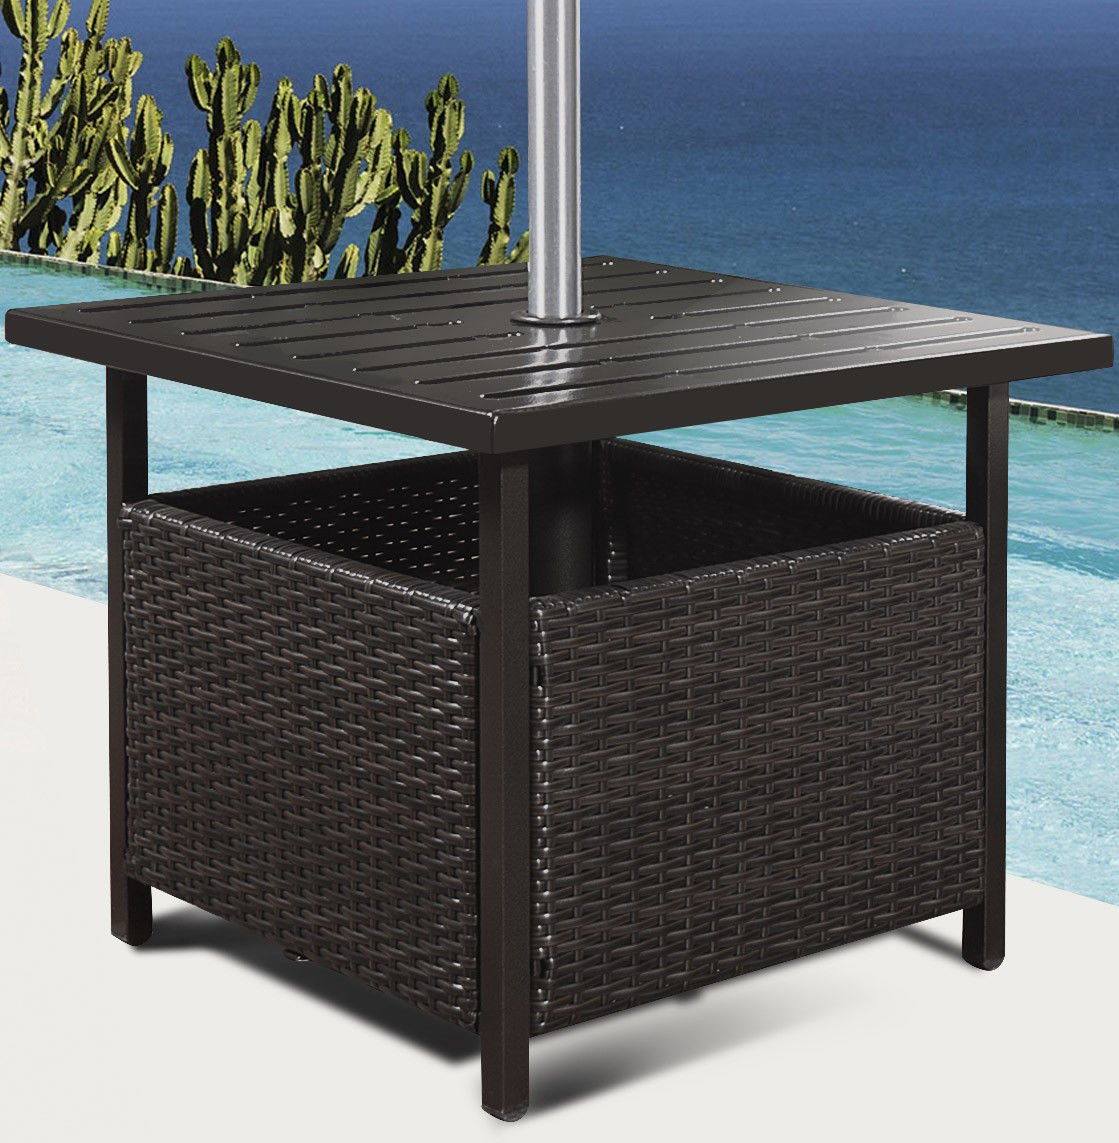 way brown rattan wicker steel side table outdoor wood furniture deck garden patio pool homemade coffee mat for dining marble bedside target replica sofa room brisbane modern glass